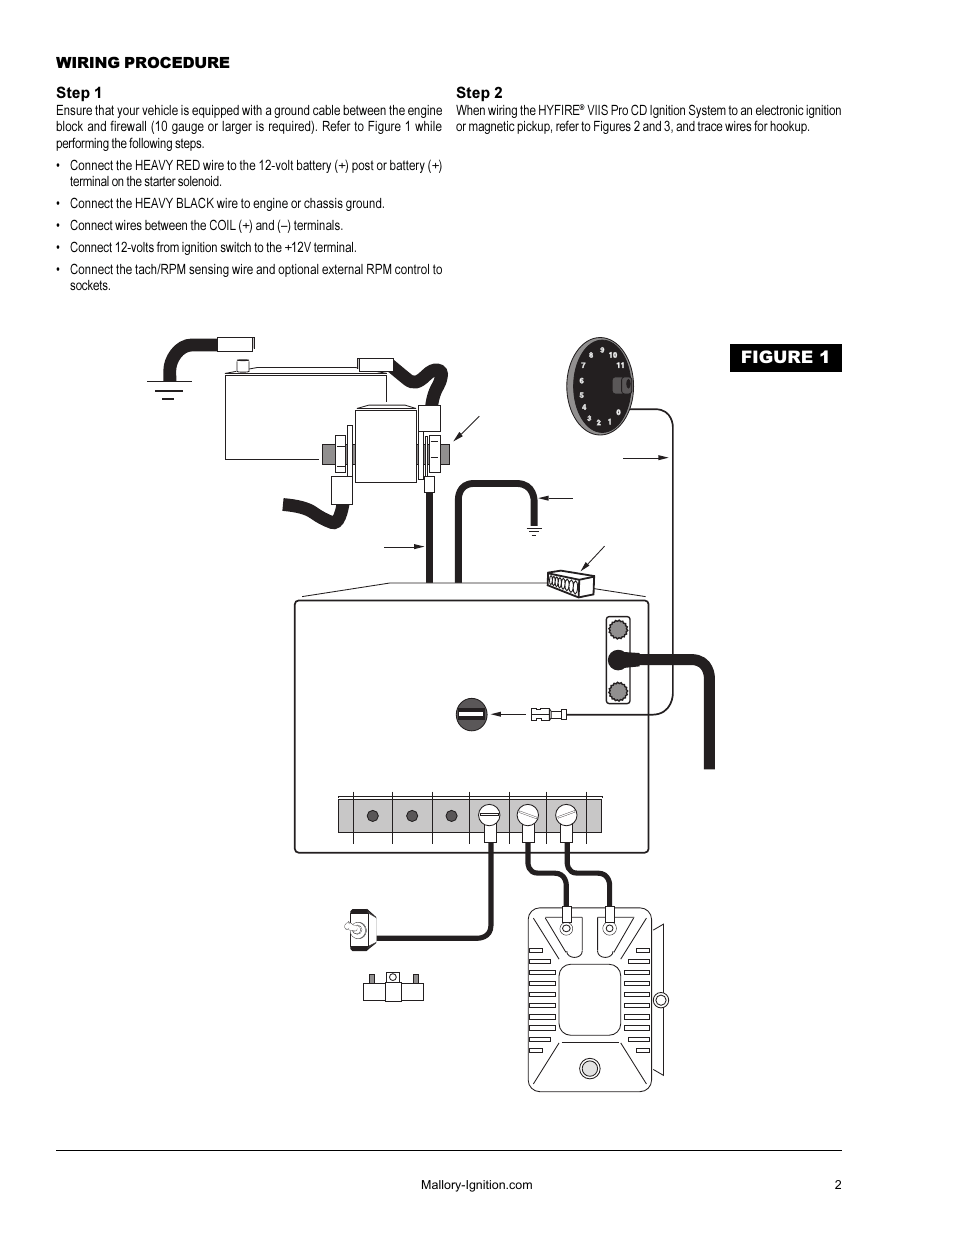 Extraordinary Mallory Wiring Diagram 351 Photos - Best Image Wiring ...